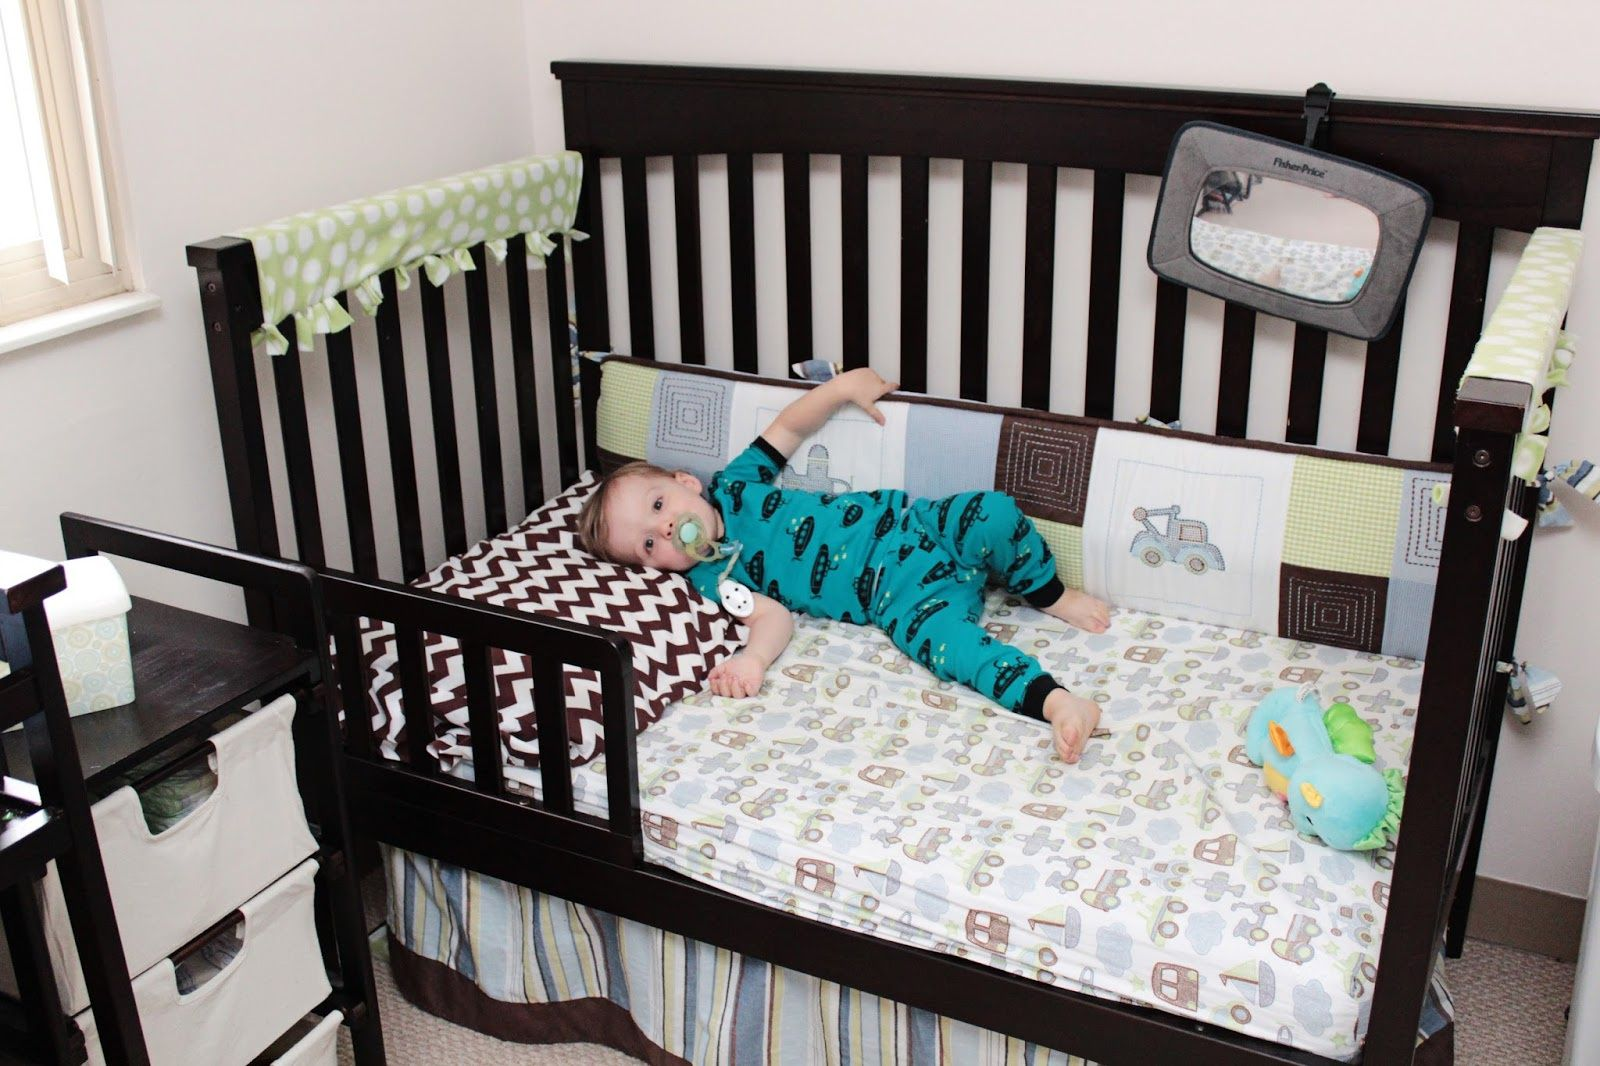 Convert A Crib Into A Full Size Bed Crib Toddler Bed Toddler Bed Cribs